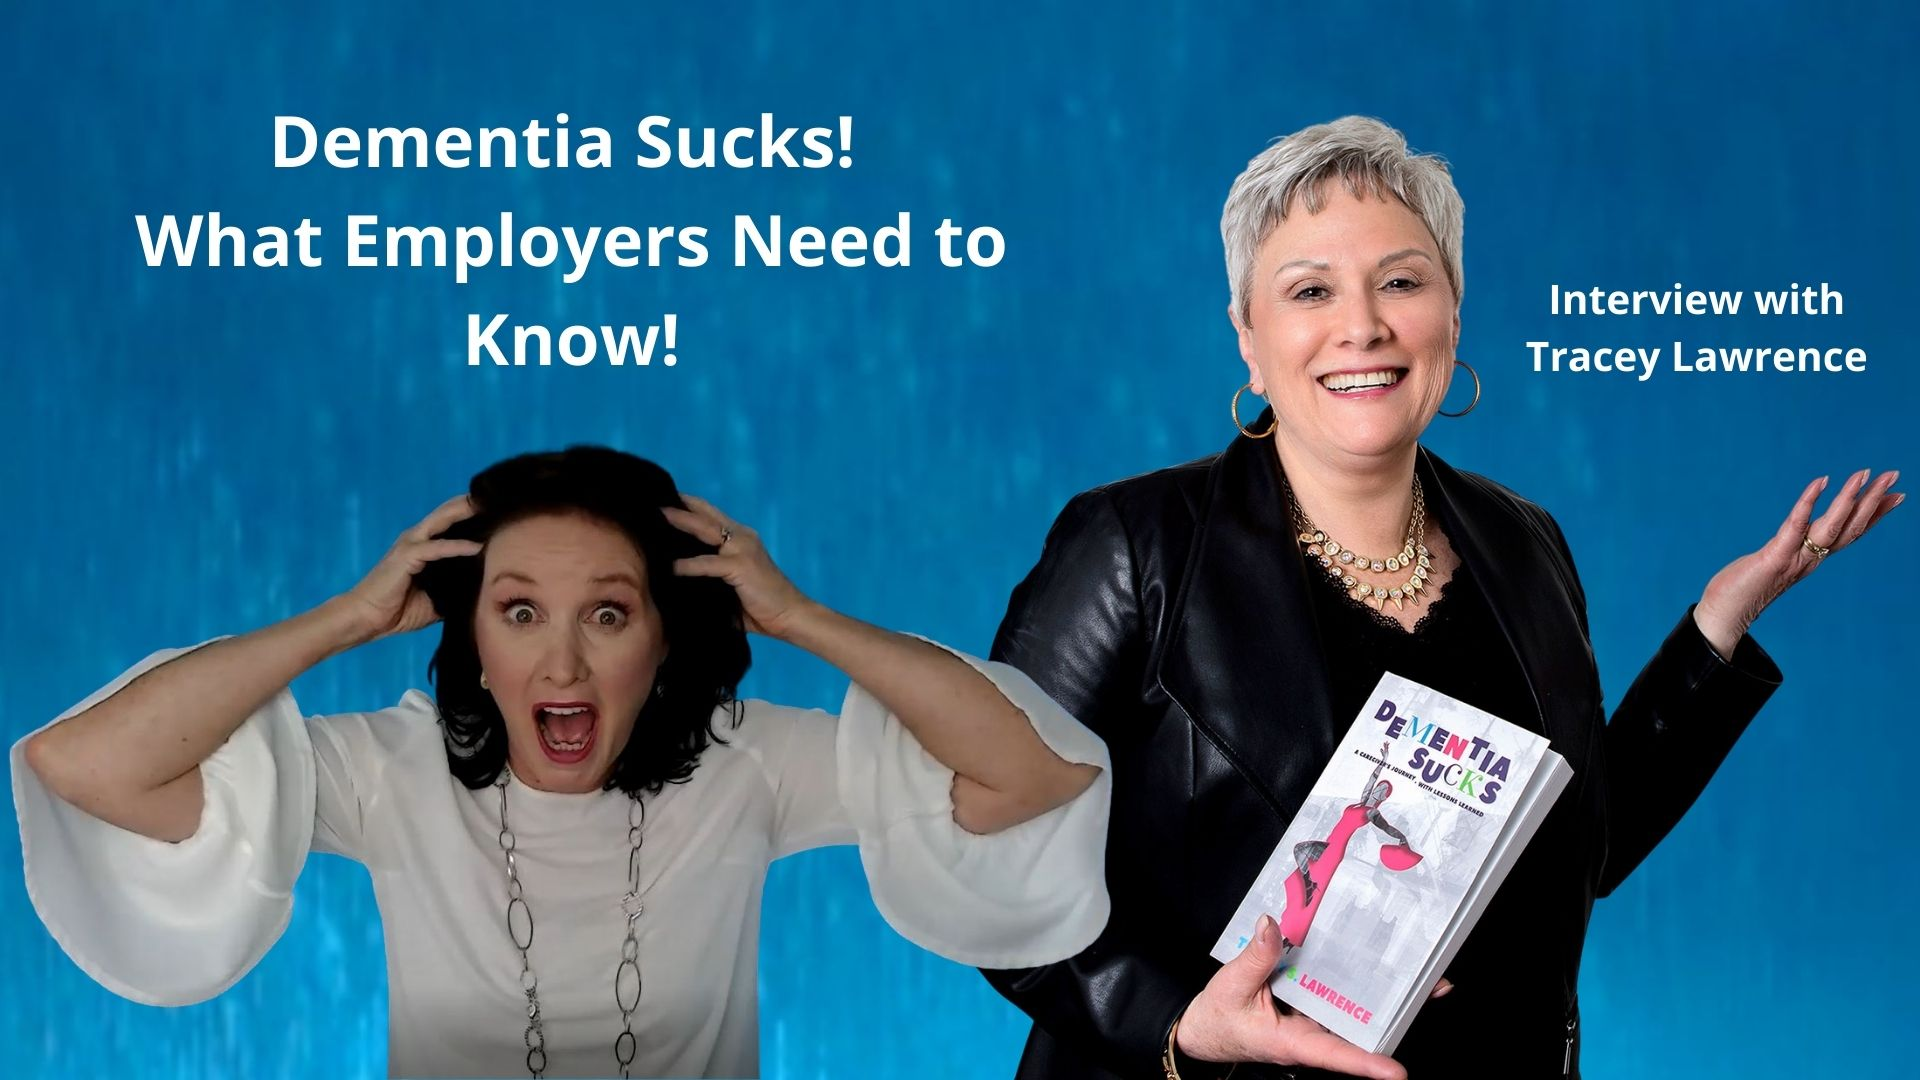 Interview with Tracey Lawrence Dementia Sucks!